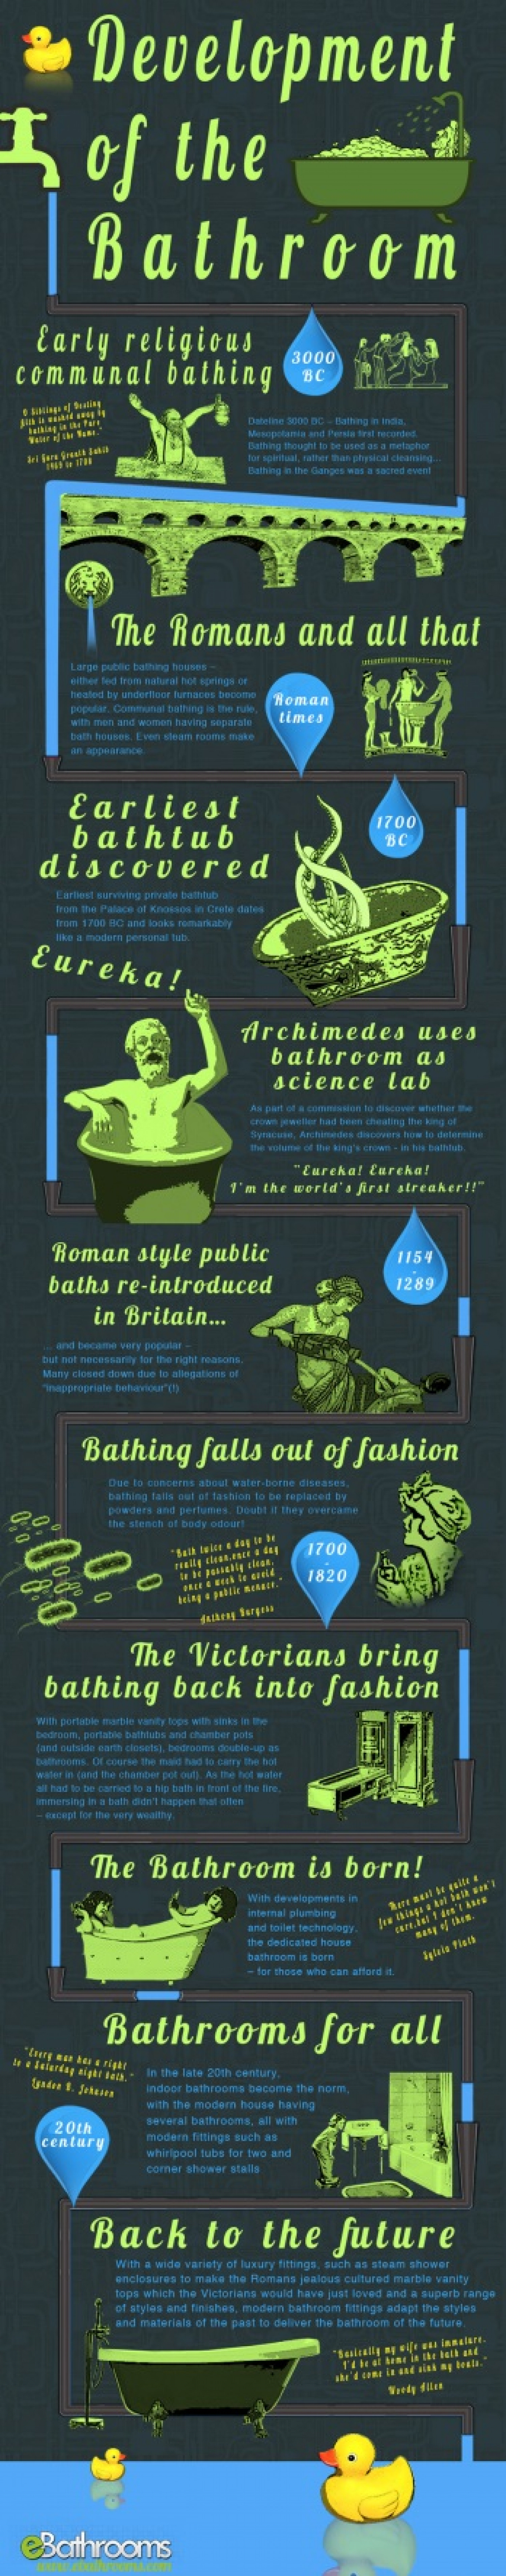 Development of the Bathroom Infographic